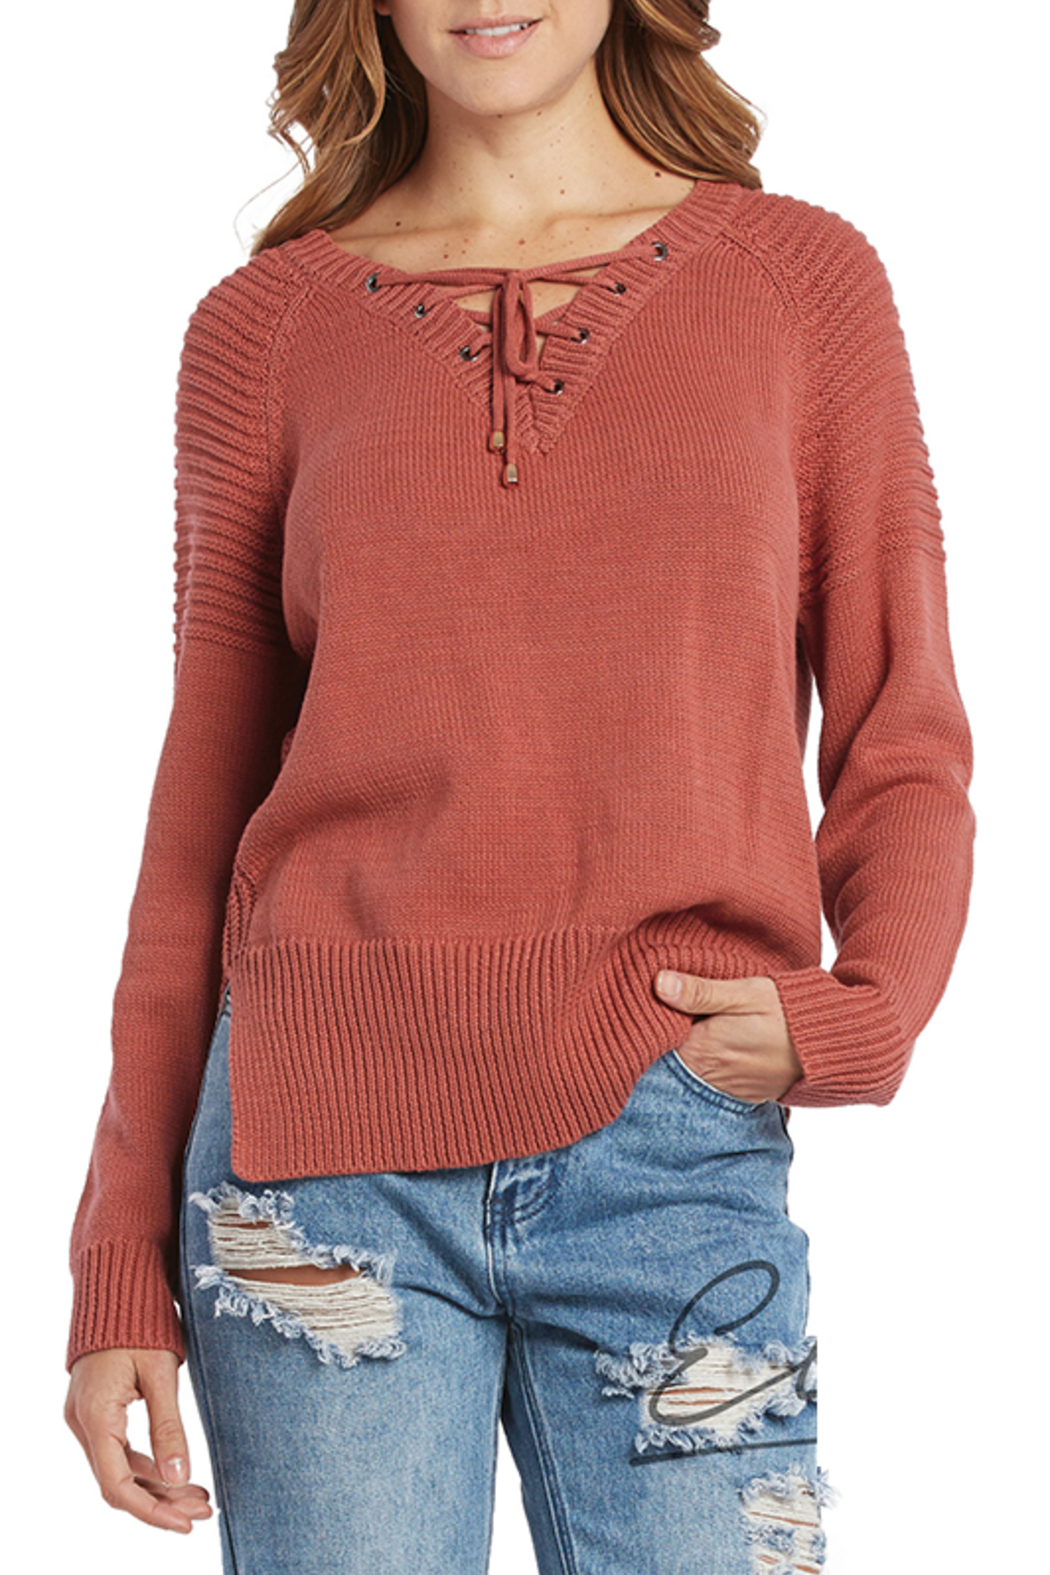 Elan Lace-Up Neck Sweater - Main Image